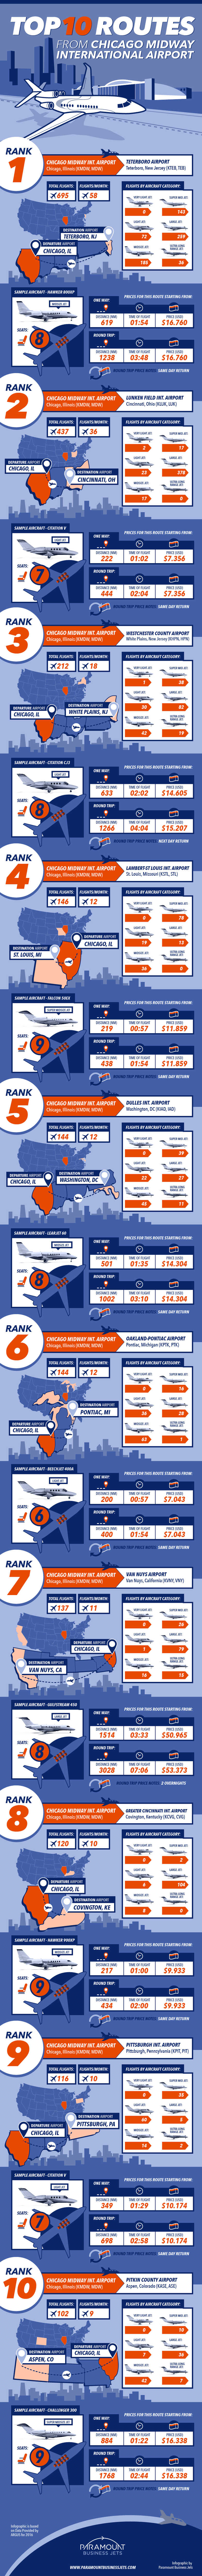 Top 10 Routes Chicago Midway Airport